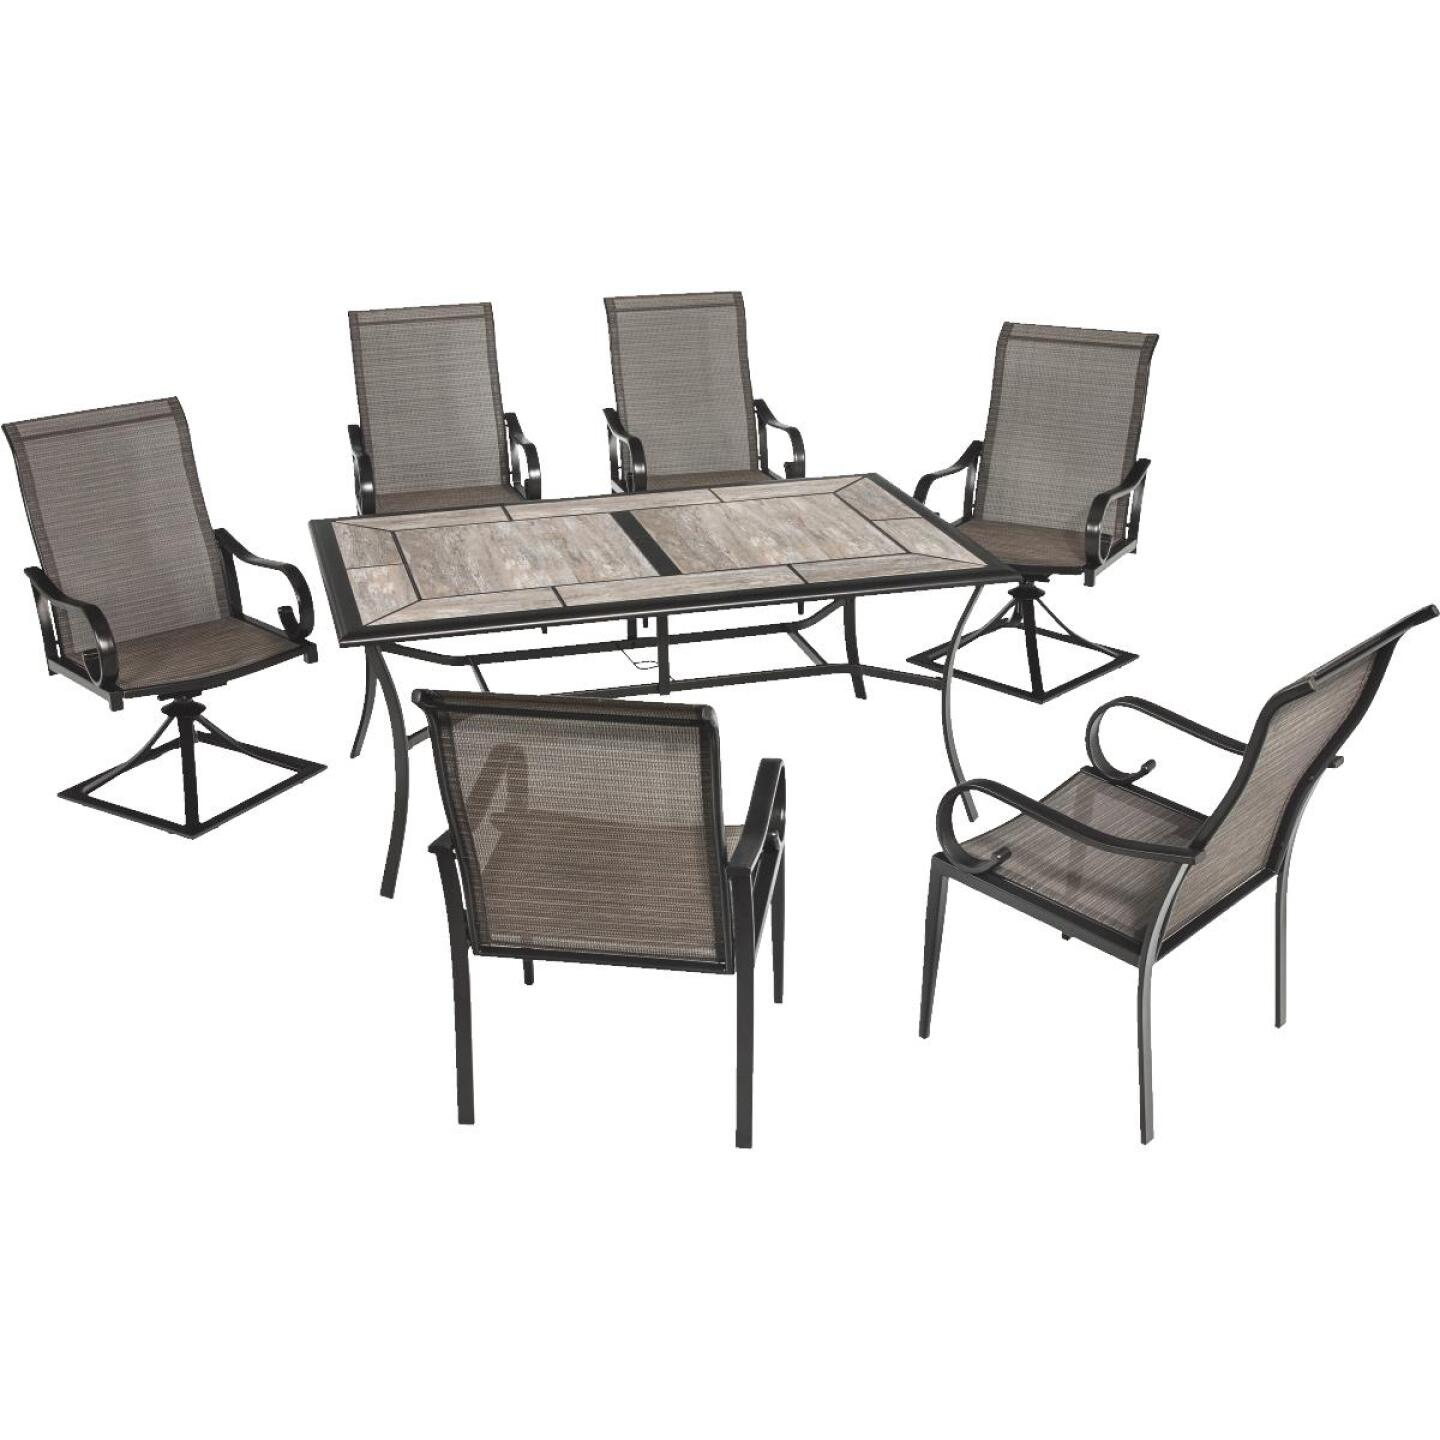 Outdoor Expressions Berkshire 7-Piece Dining Set Image 308